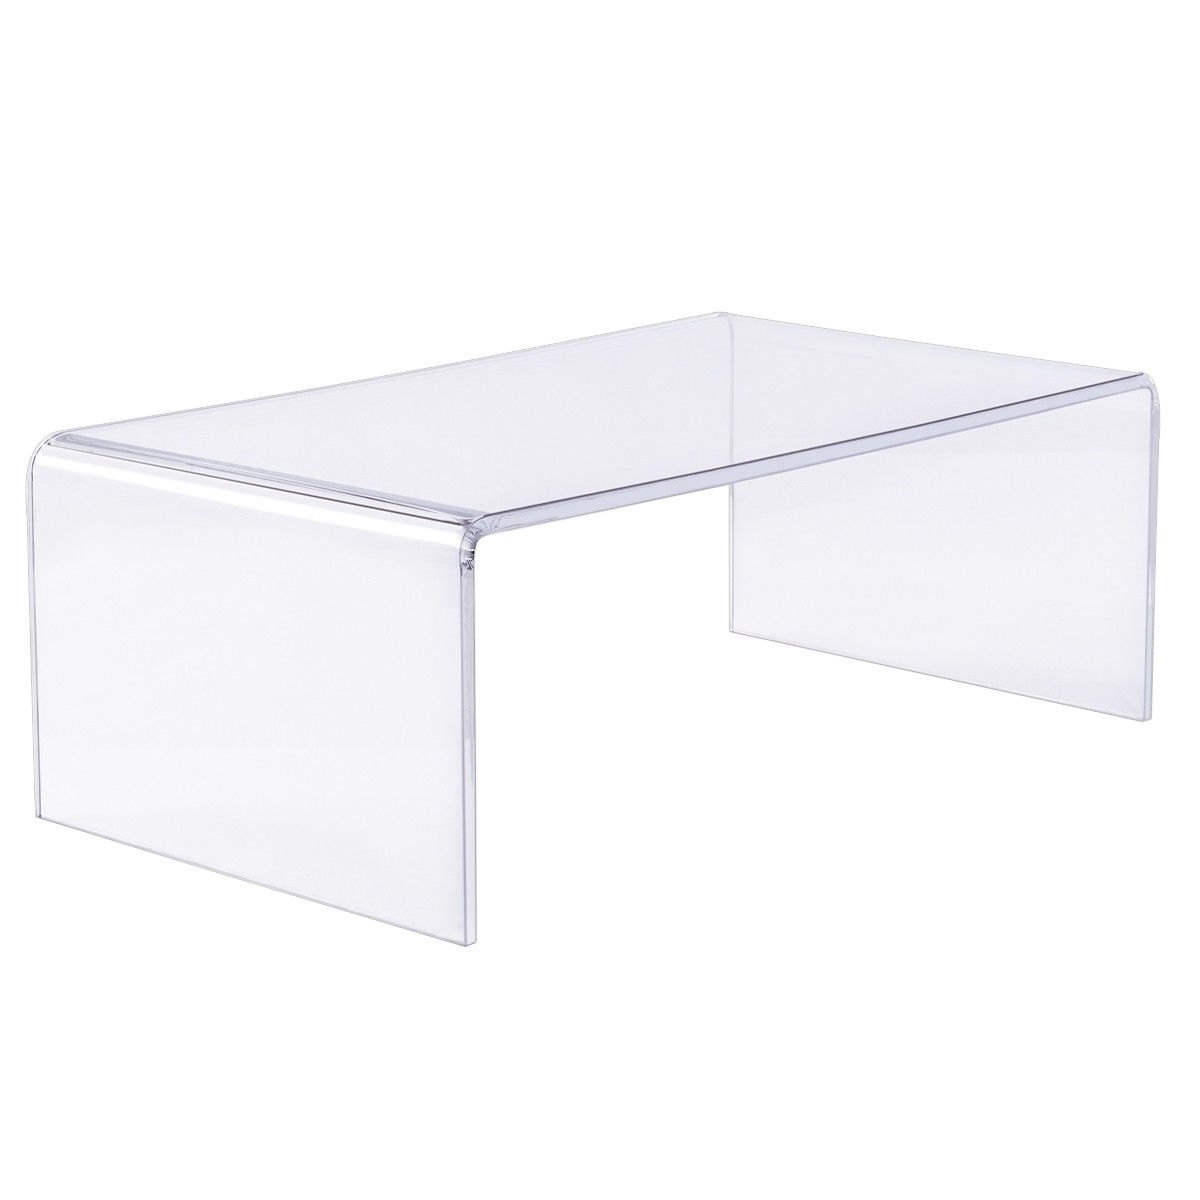 Gorgeous Square Acrylic Coffee Table Of New Si #71612 | Forazhouse intended for Square Waterfall Coffee Tables (Image 9 of 30)